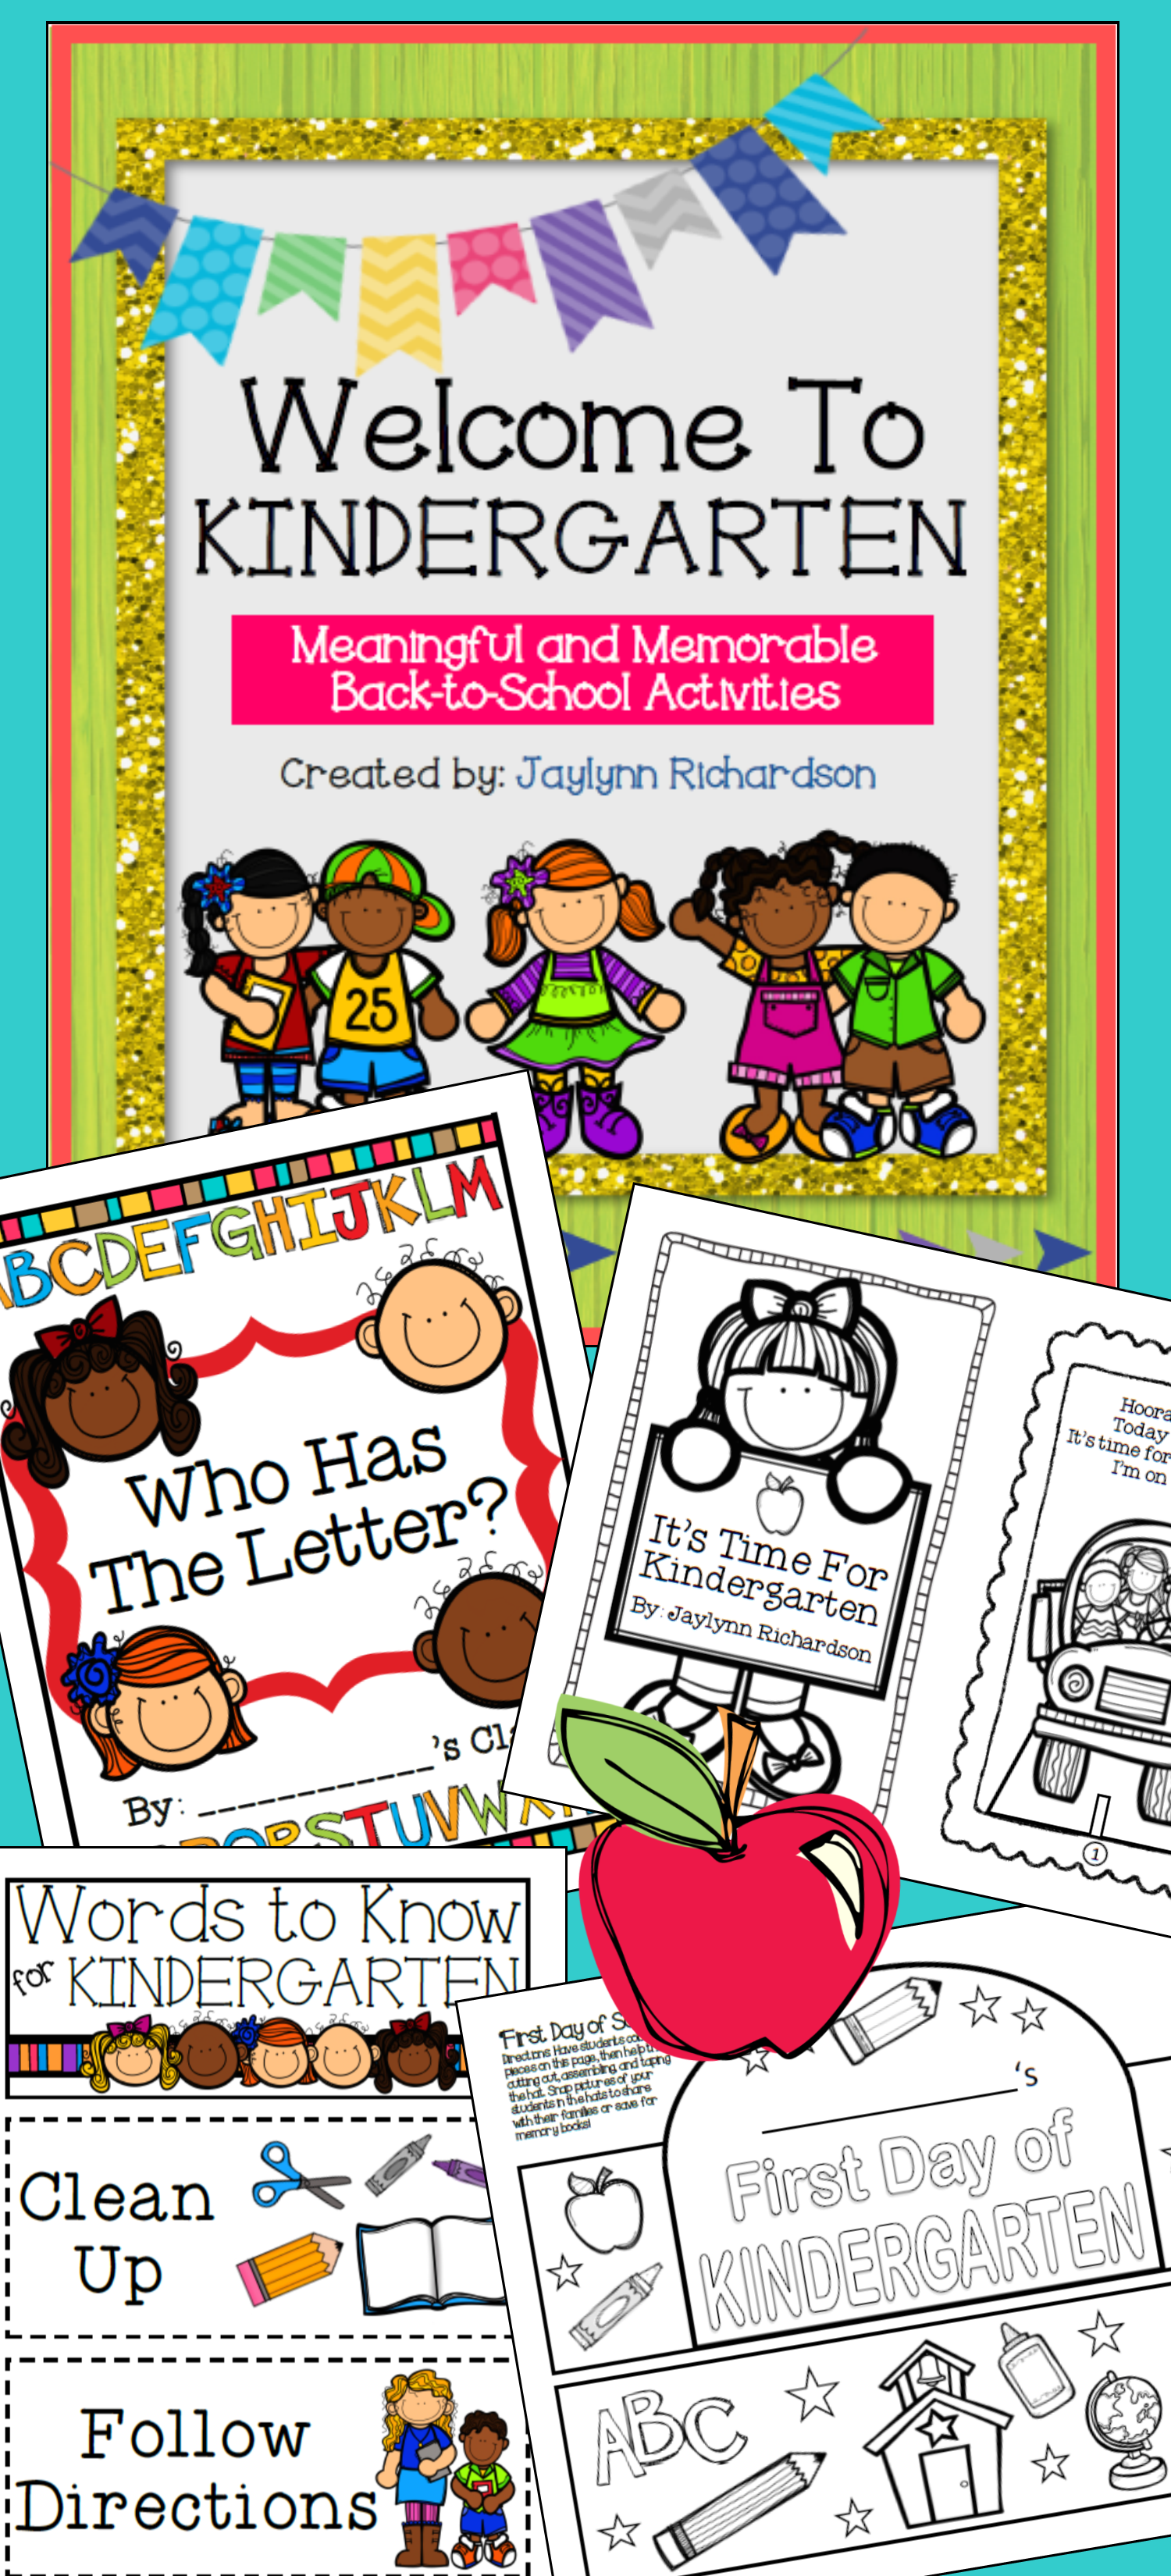 Welcome To Kindergarten! Meaningful And Memorable Back-to-school